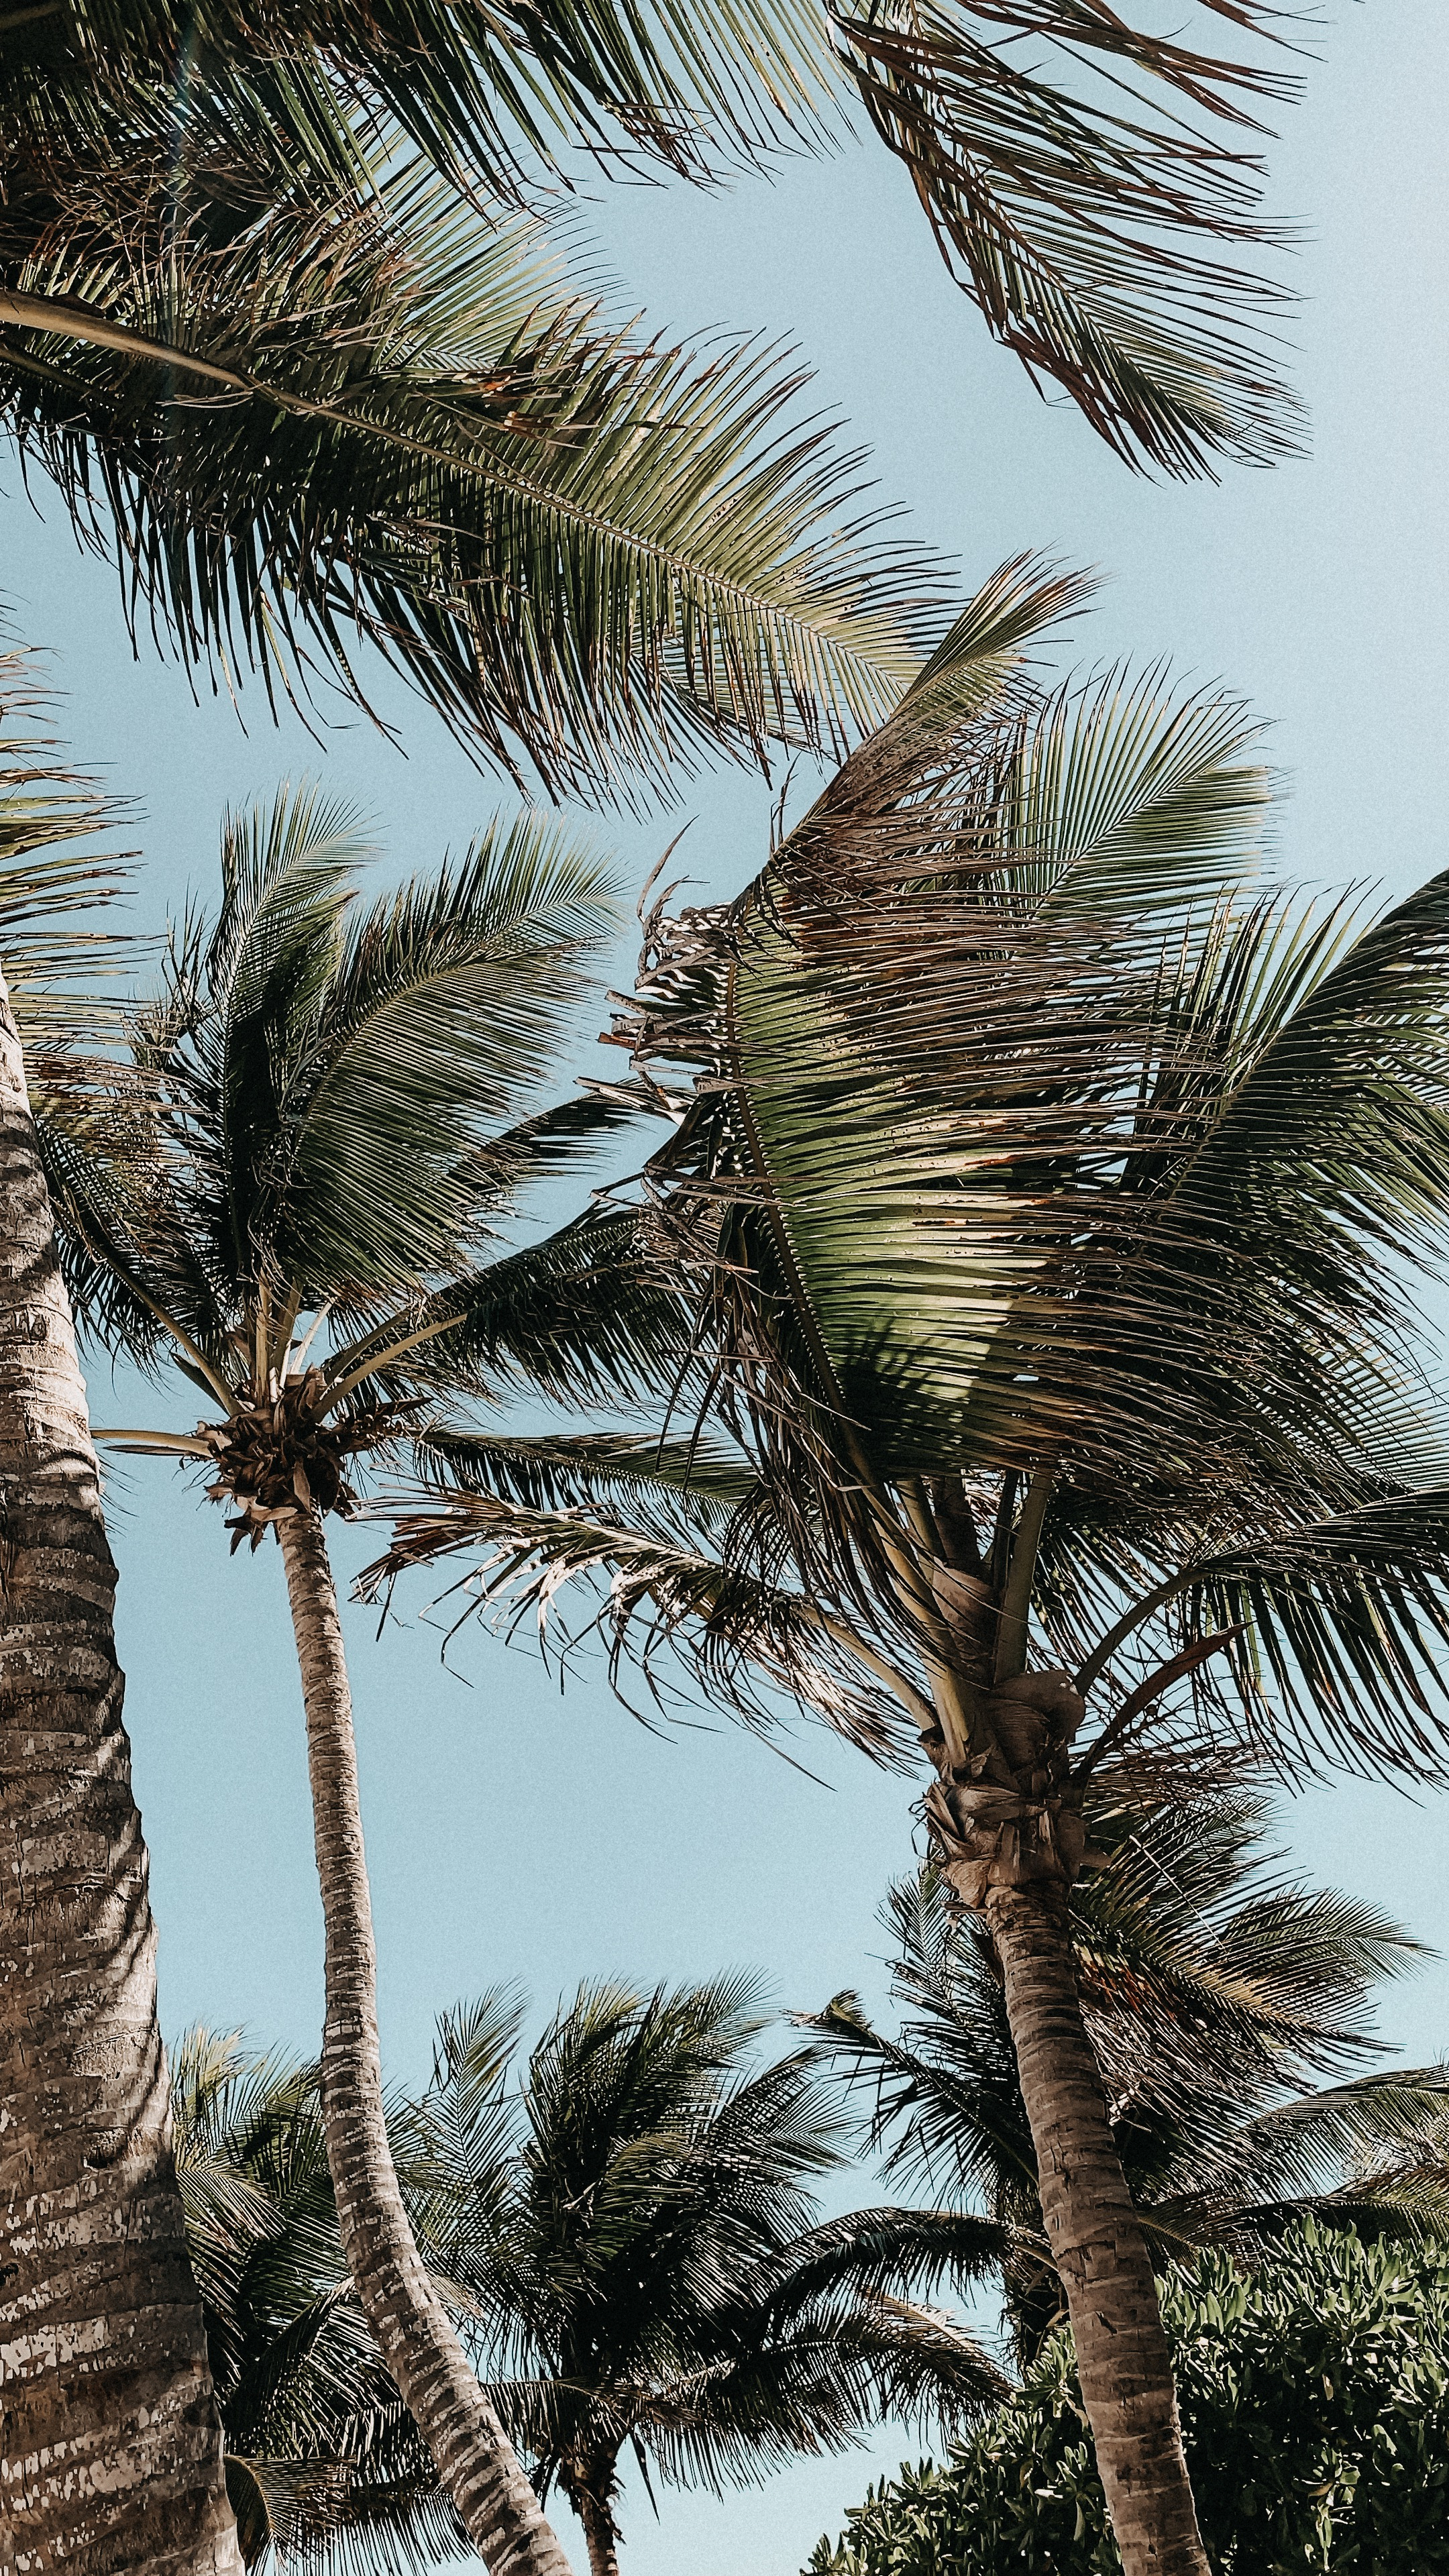 Palm trees in Mexico; shot by Karolin Baitinger